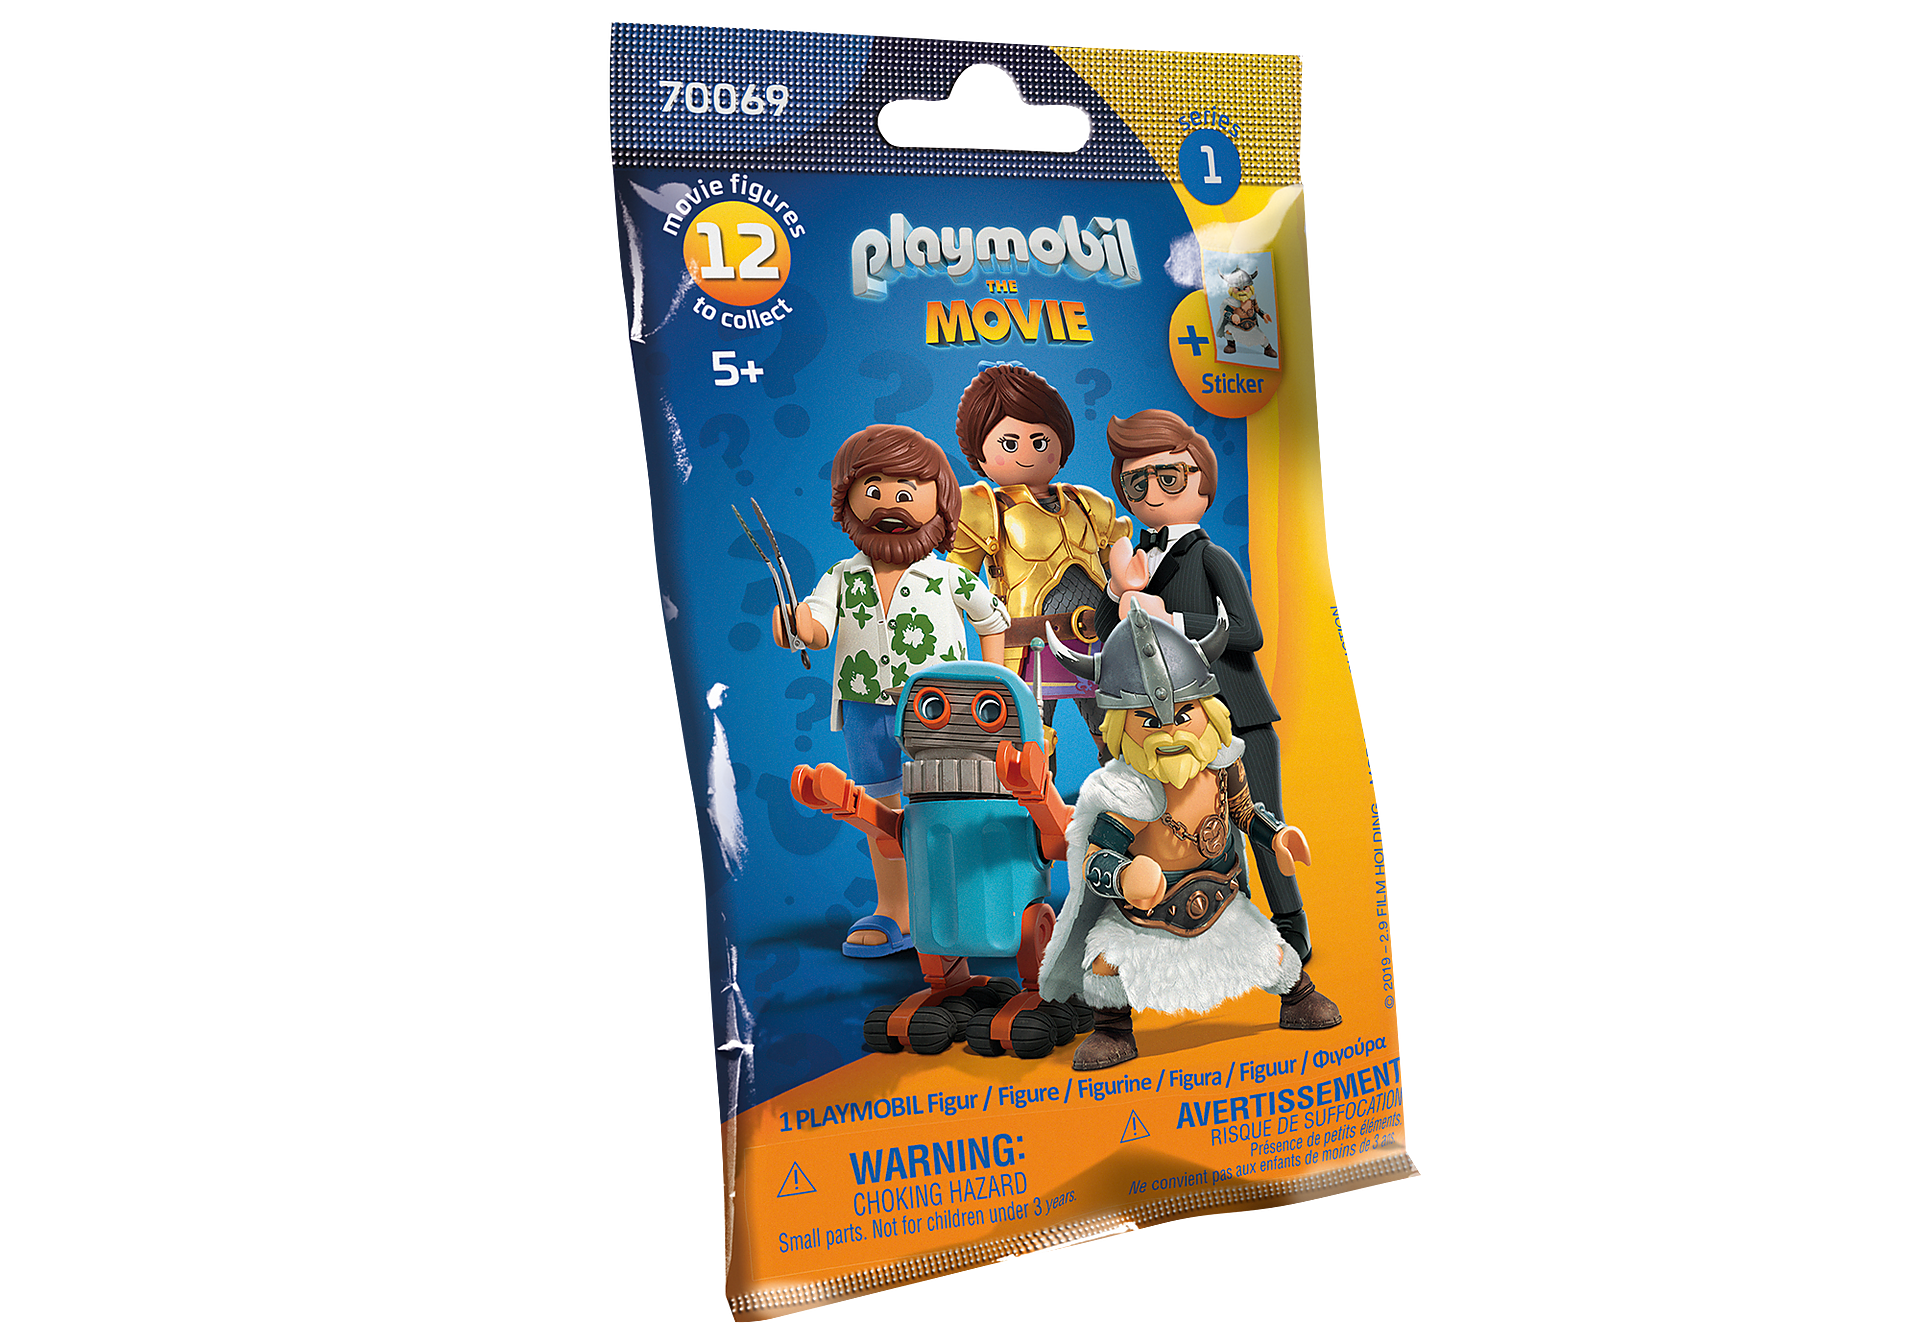 70069 PLAYMOBIL:THE MOVIE Figures (Serie 1) zoom image2